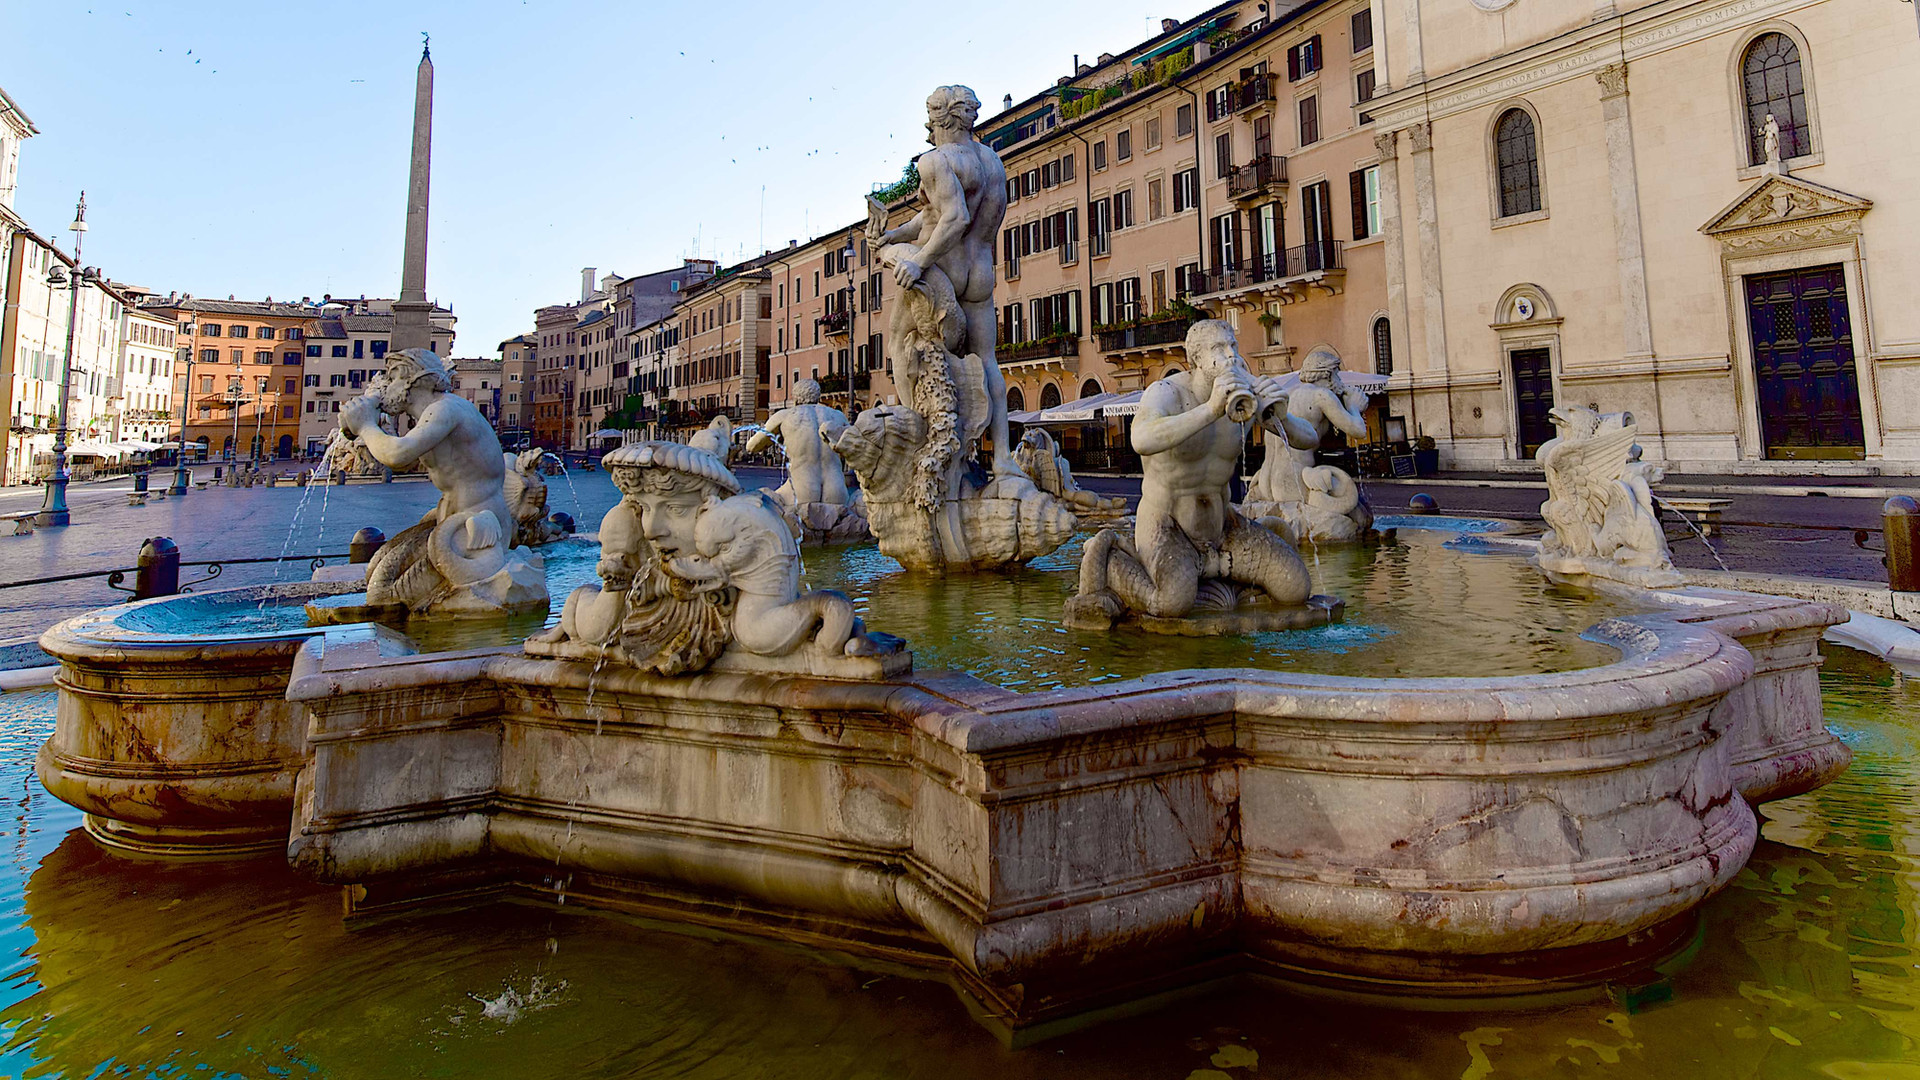 Piazza Navona and its Fountains